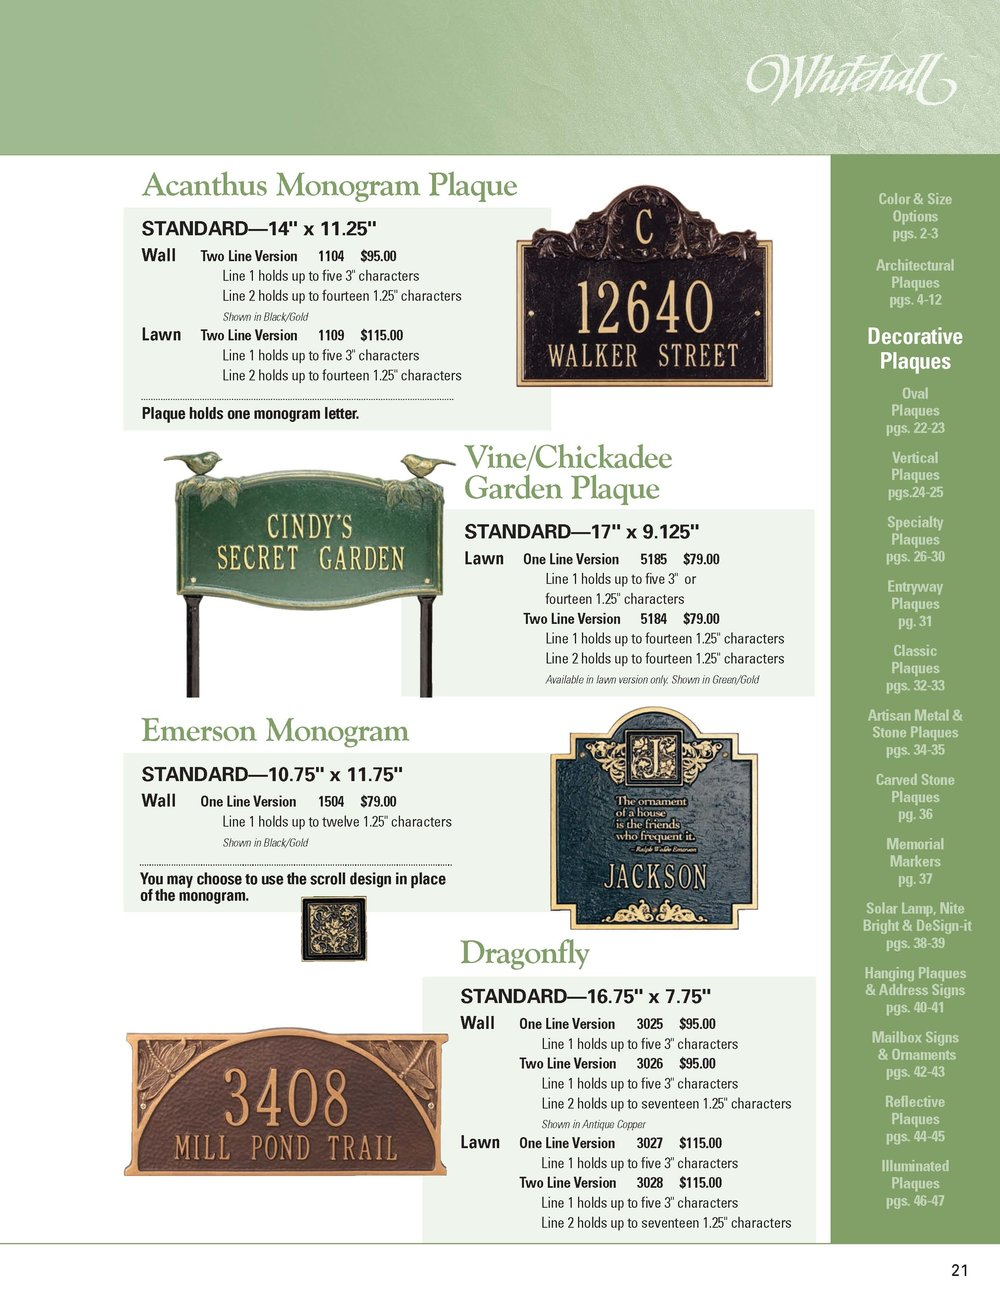 whitehall_catalog_pers_Page_21.jpg